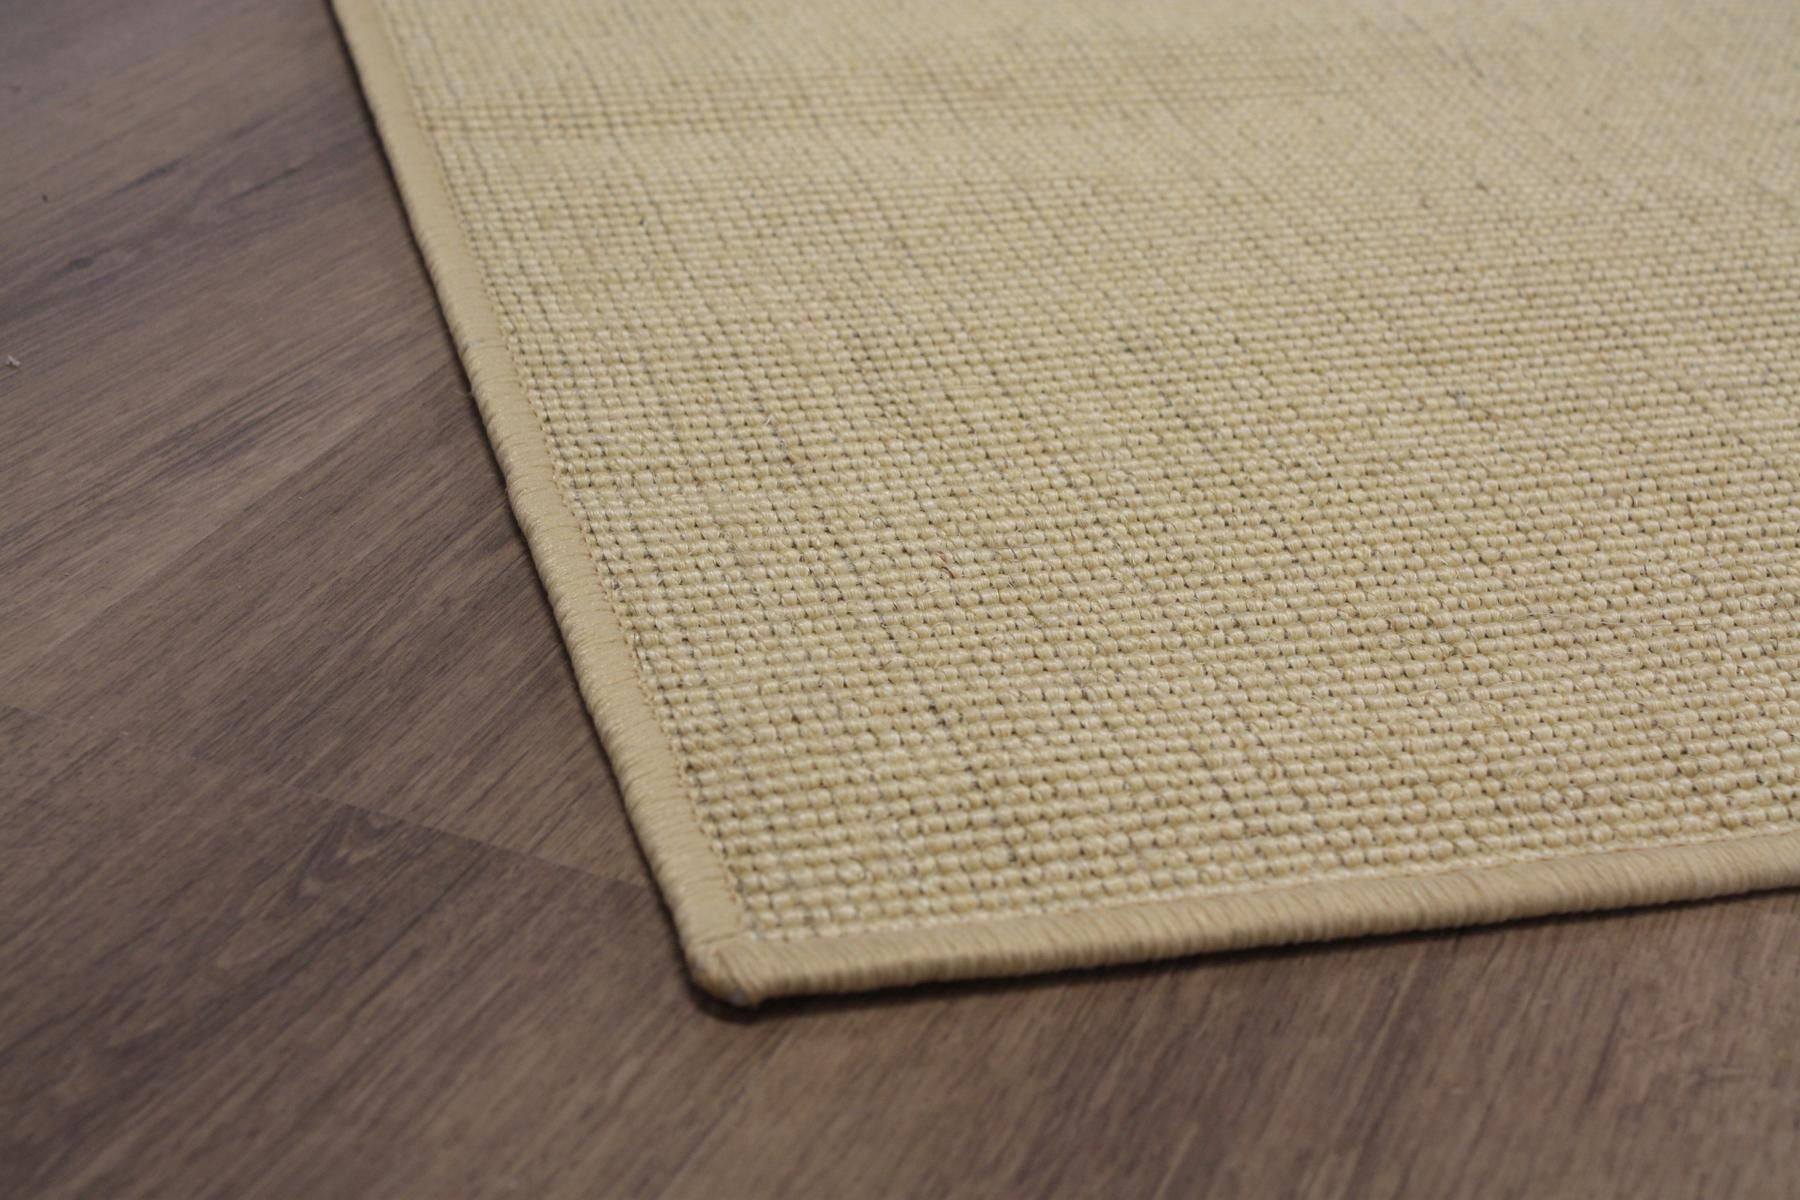 sisal tapis surfil riz 200x200cm 100 sisal boucle ebay. Black Bedroom Furniture Sets. Home Design Ideas